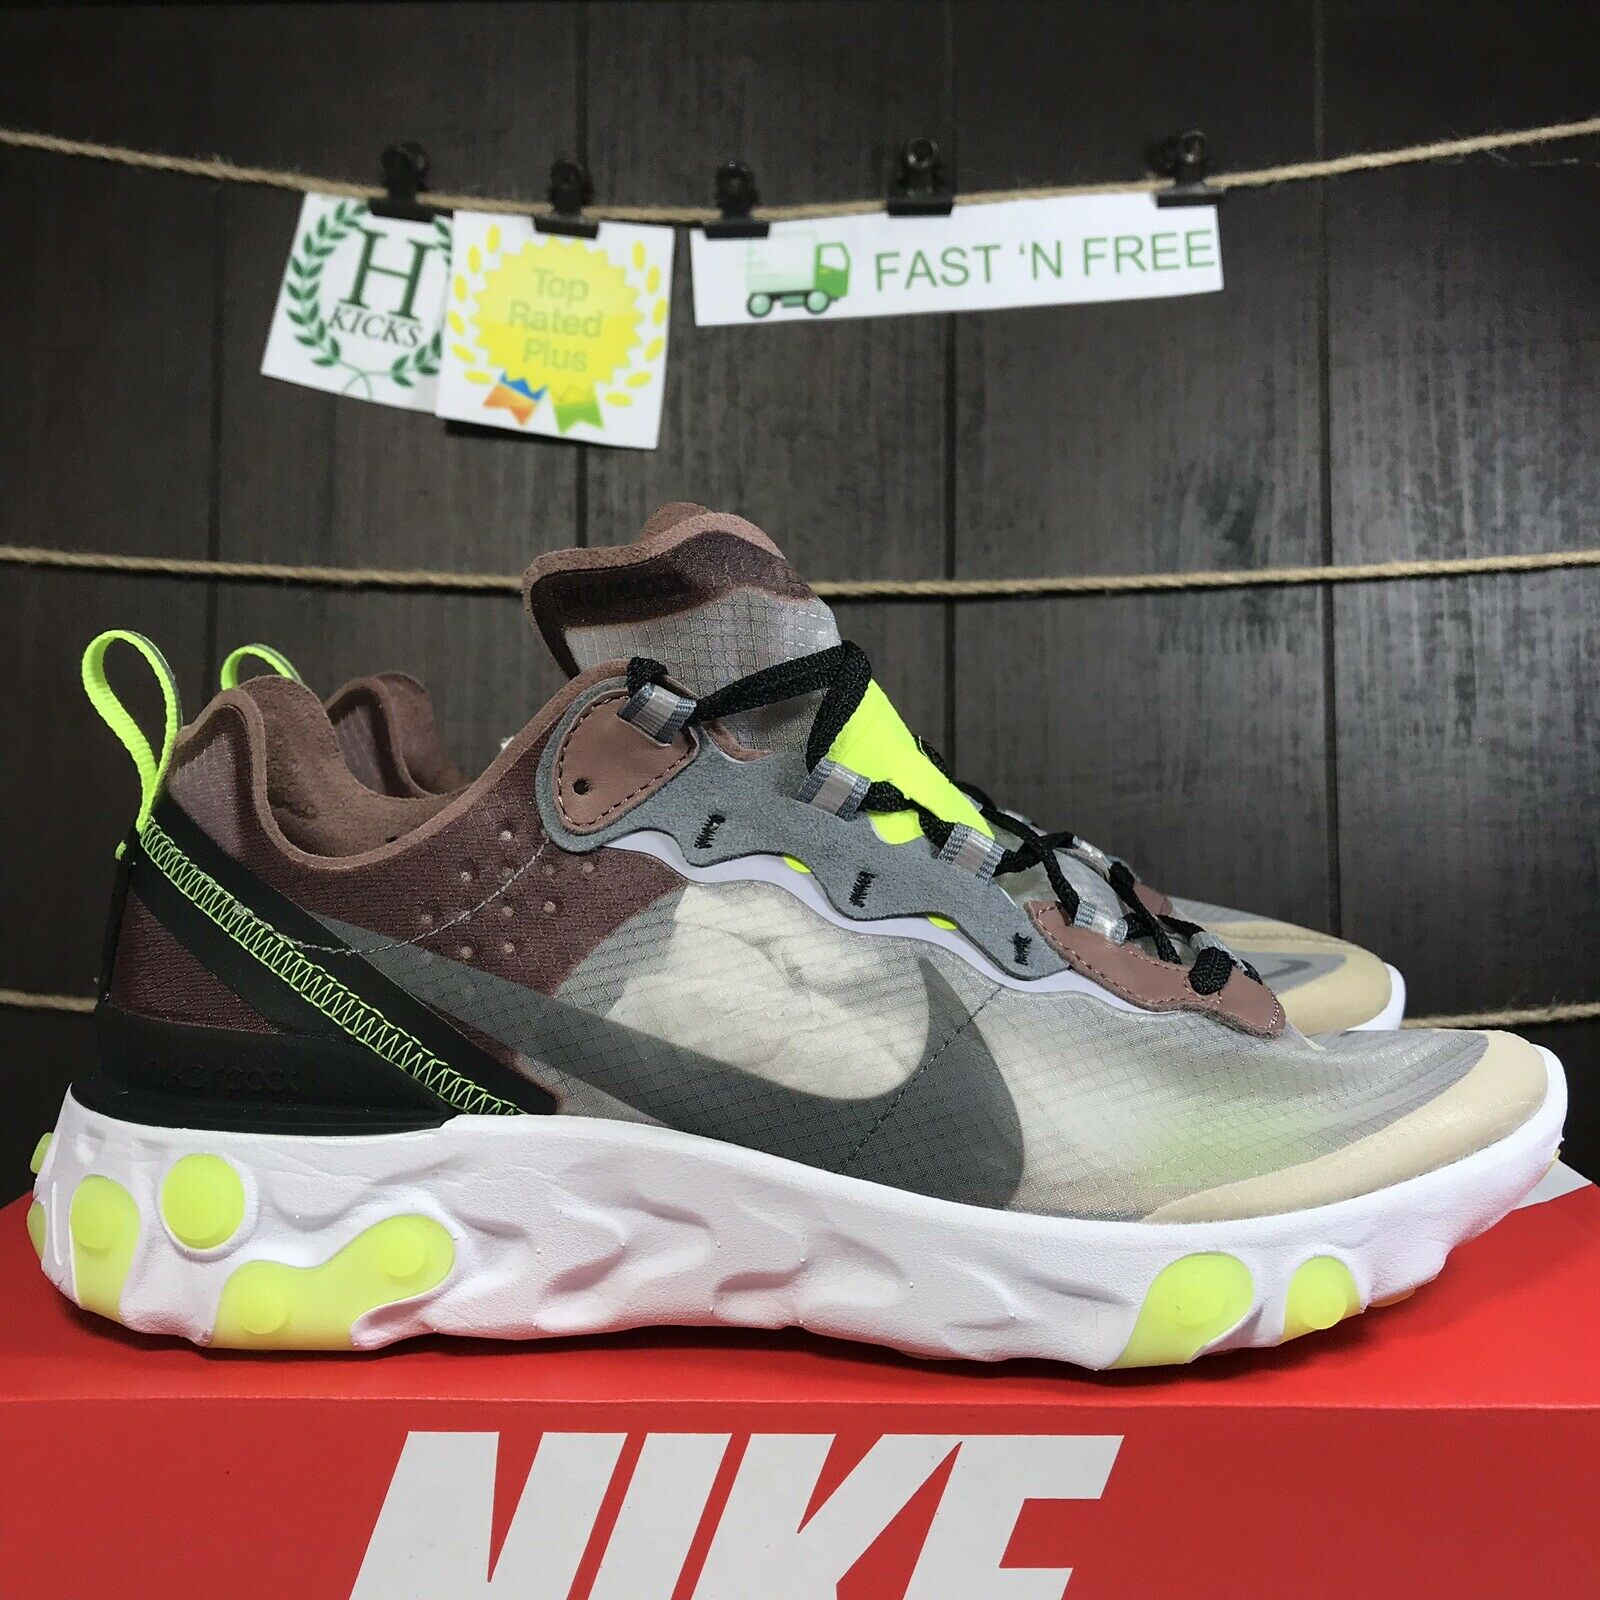 Nike React Element 87 Desert Sand Cool Grey Volt Brown White AQ1090 002 Size 8.5